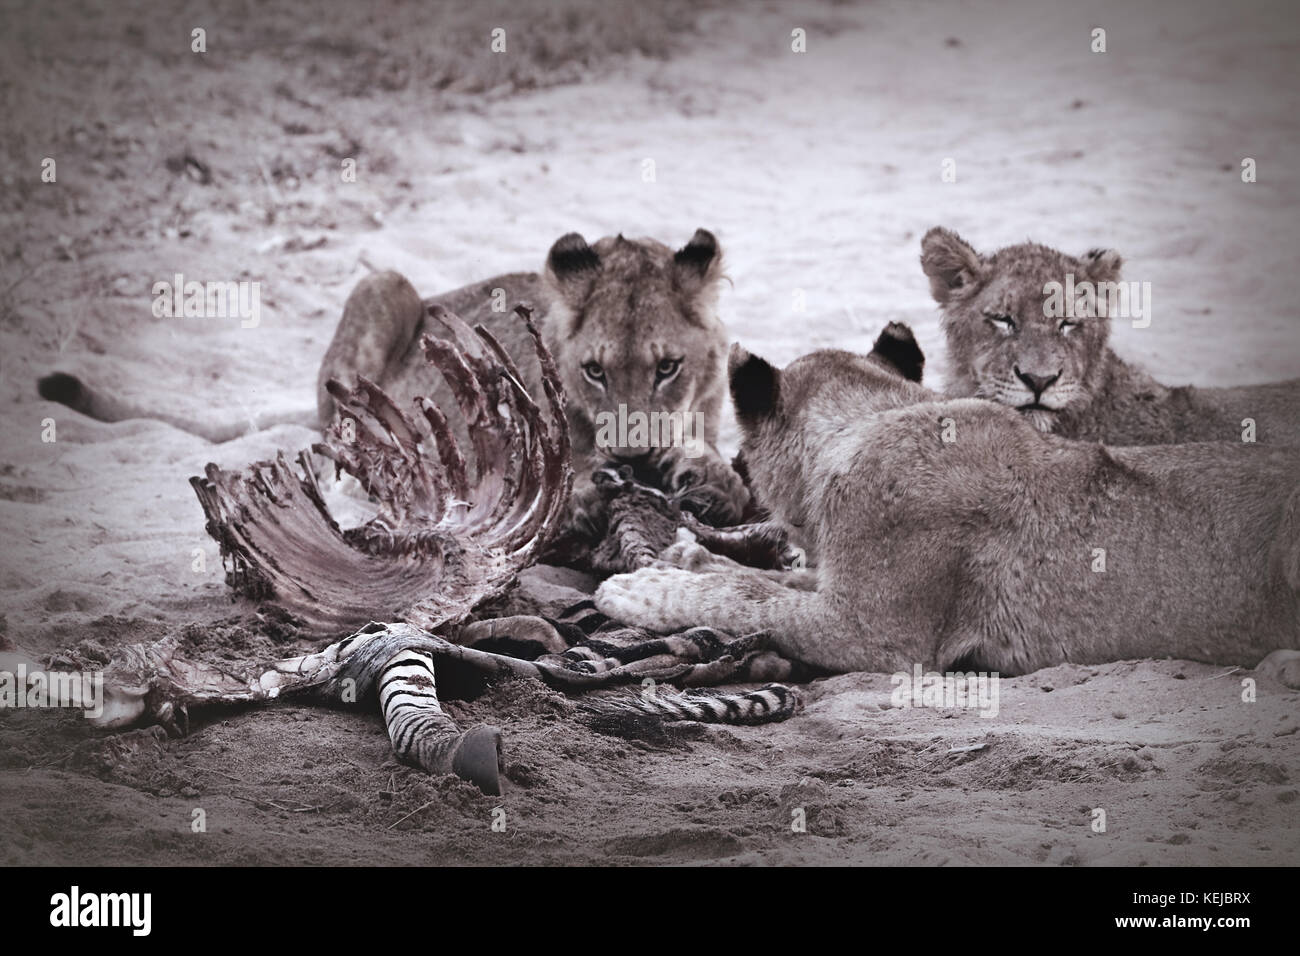 Pack of South African lions eating at a killed zebra in the Kruger National Park, South Africa - Stock Image